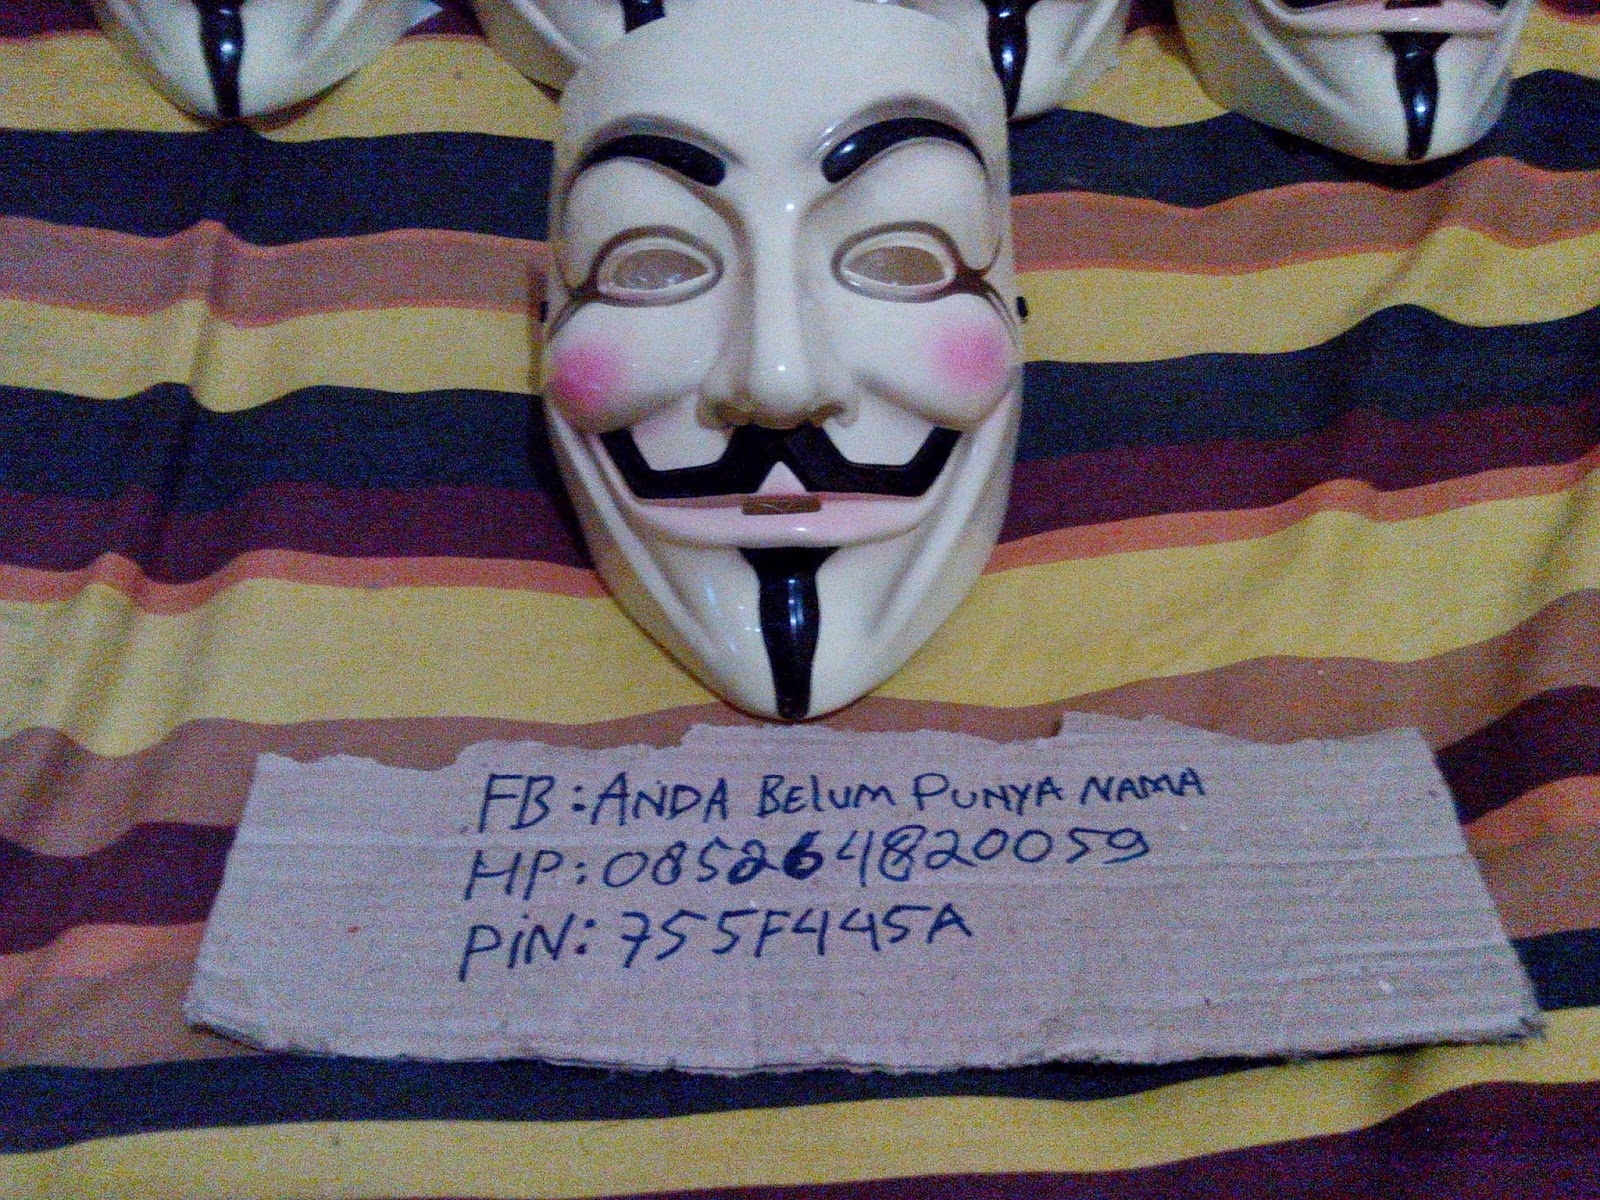 Jual Mask Anonymous V For Vendetta Ori Denmark murah